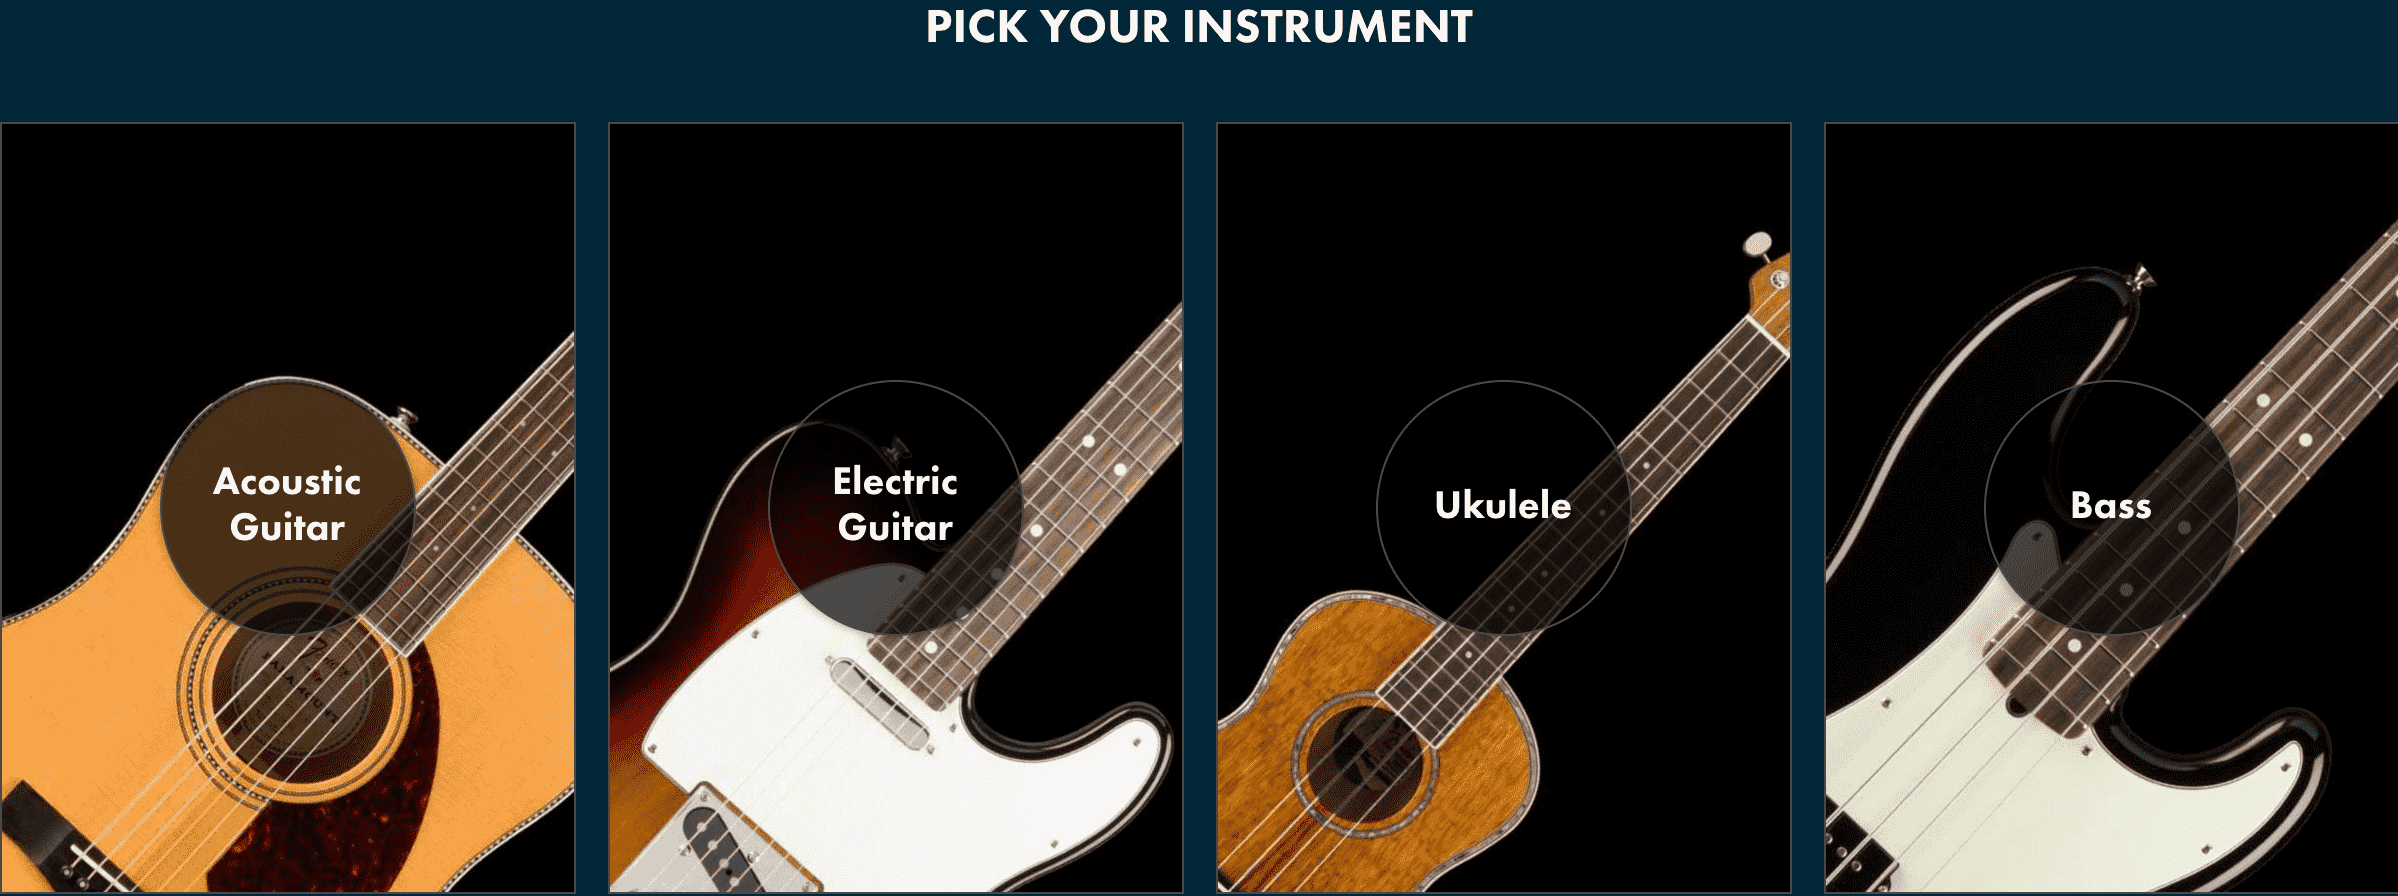 Fender Play guitar type selection